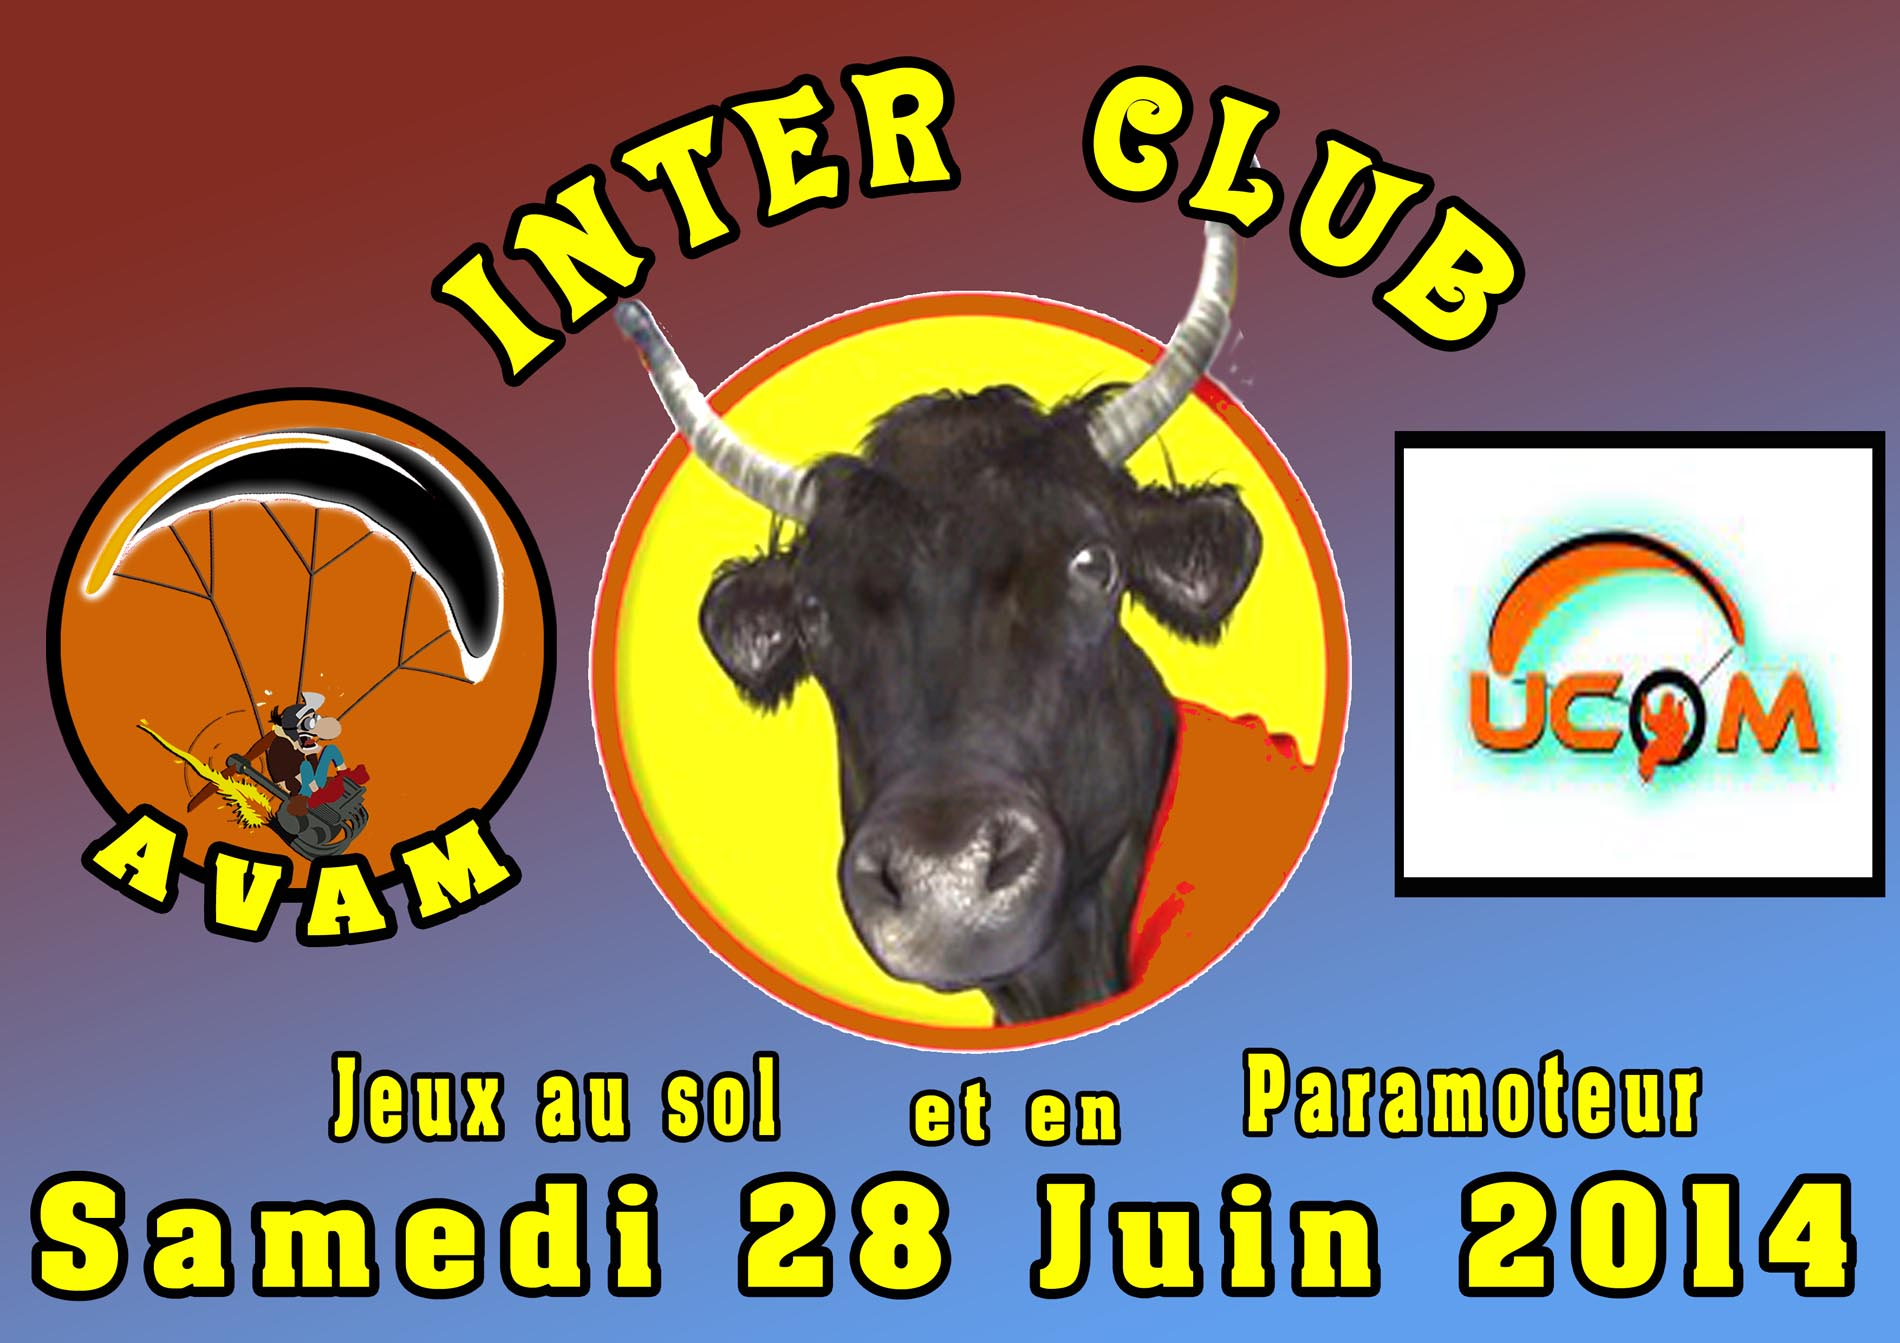 INTER CLUB copie